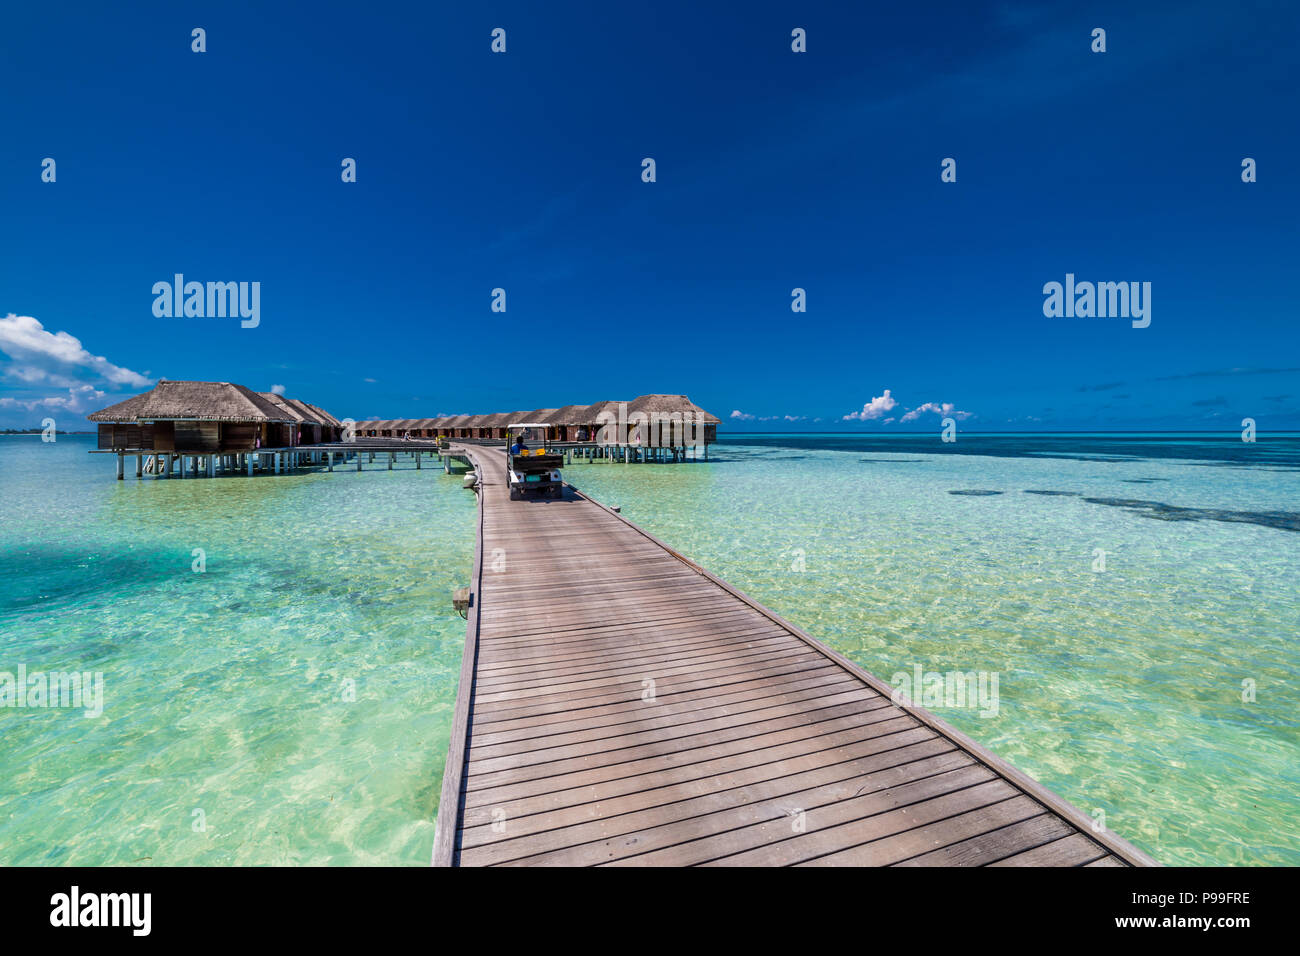 Maldives island, luxury water villas resort and wooden pier. Beautiful sky and clouds and beach background for summer vacation holiday and travel - Stock Image